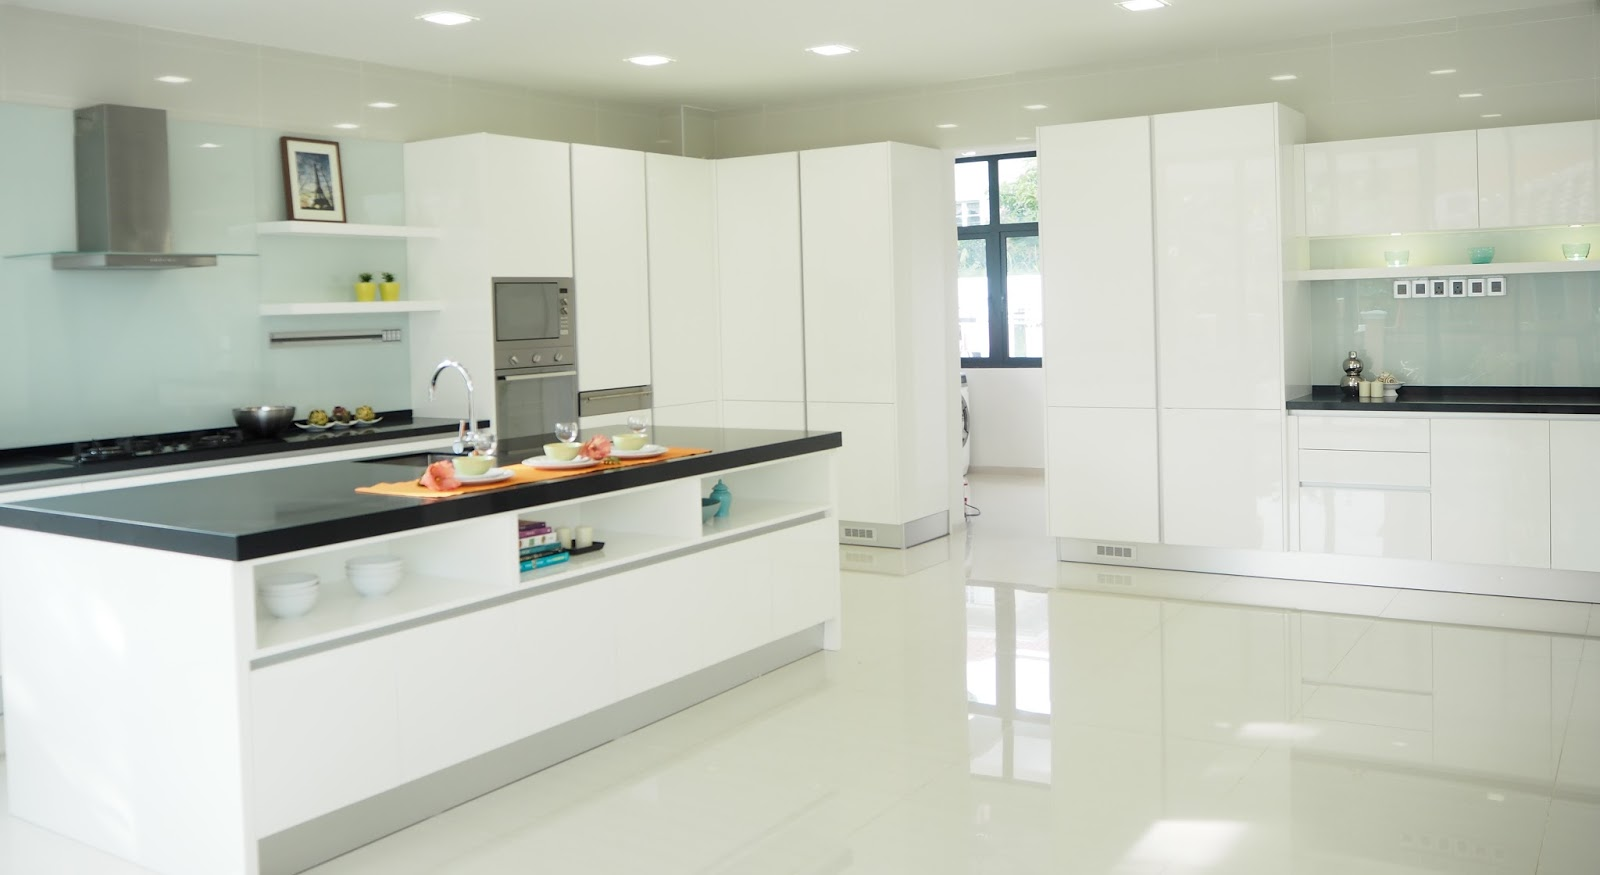 meridian interior design and kitchen design in kuala lumpur selangor malaysia modern white. Black Bedroom Furniture Sets. Home Design Ideas